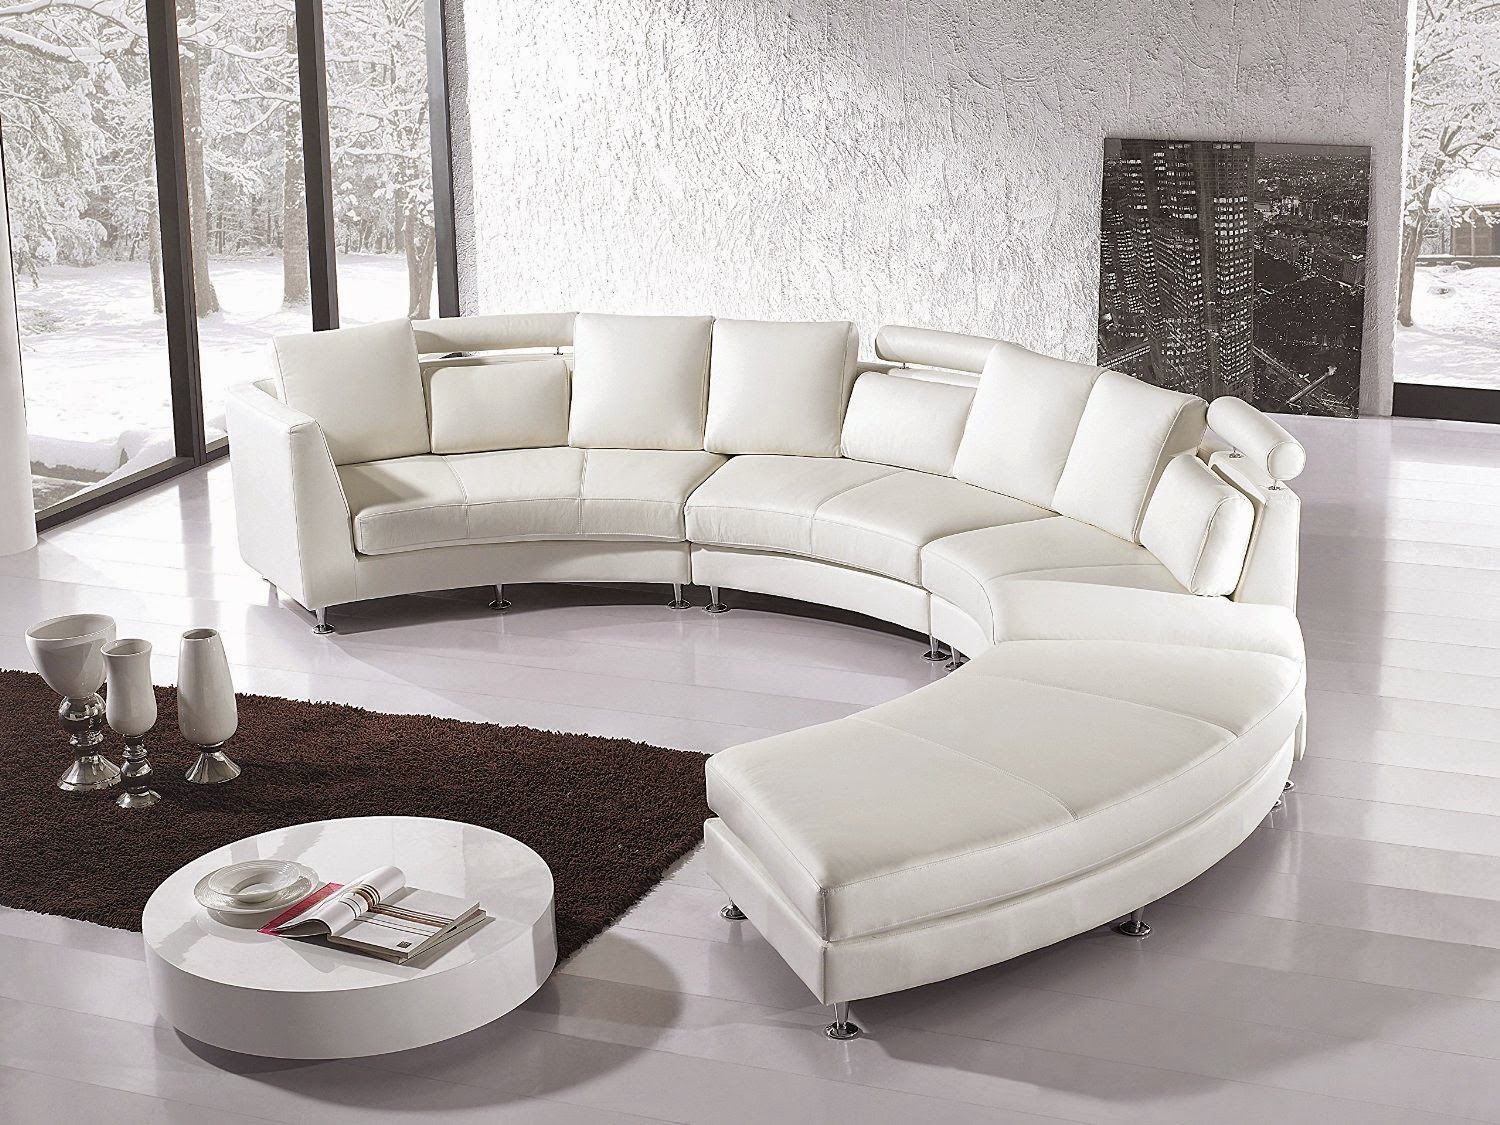 curved sofas and loveseats reviews curved sofa leather. Black Bedroom Furniture Sets. Home Design Ideas